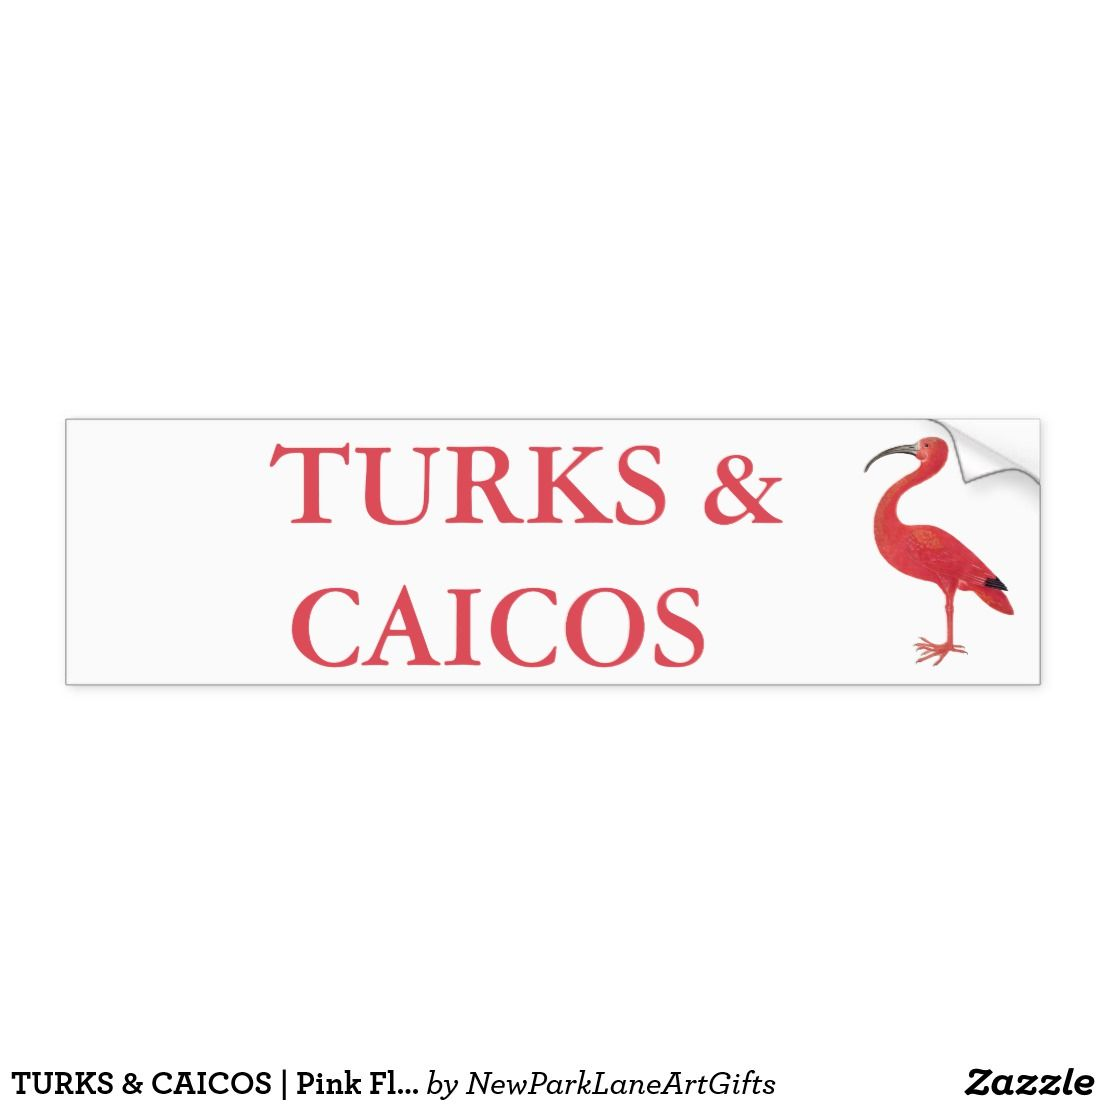 Turks Caicos Pink Flamingo Bumper Sticker Bumper Stickers Bumpers Strong Adhesive [ 1106 x 1106 Pixel ]